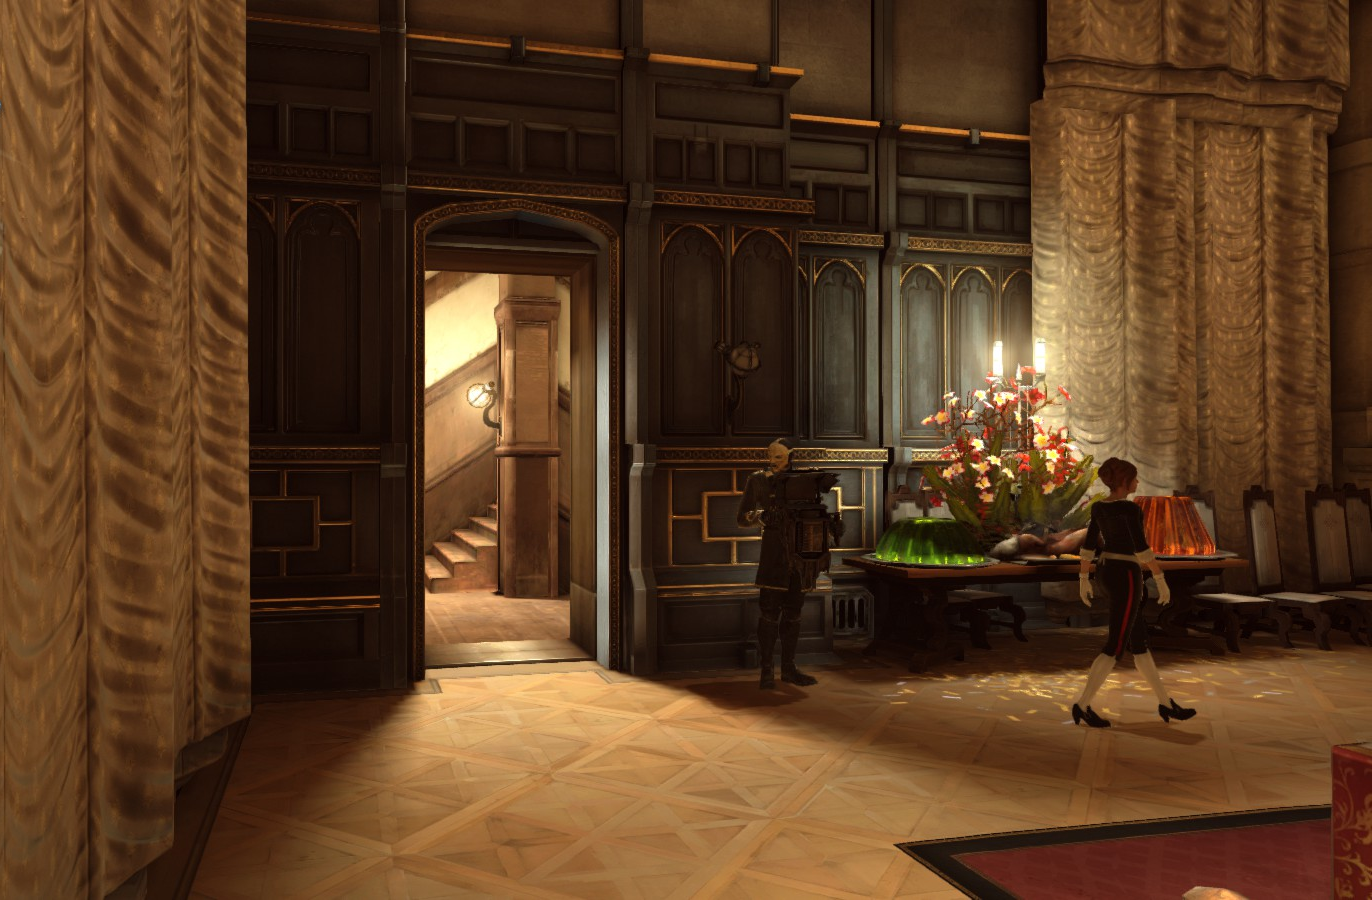 Image Boyle Mansion Servant Access Png Dishonored Wiki